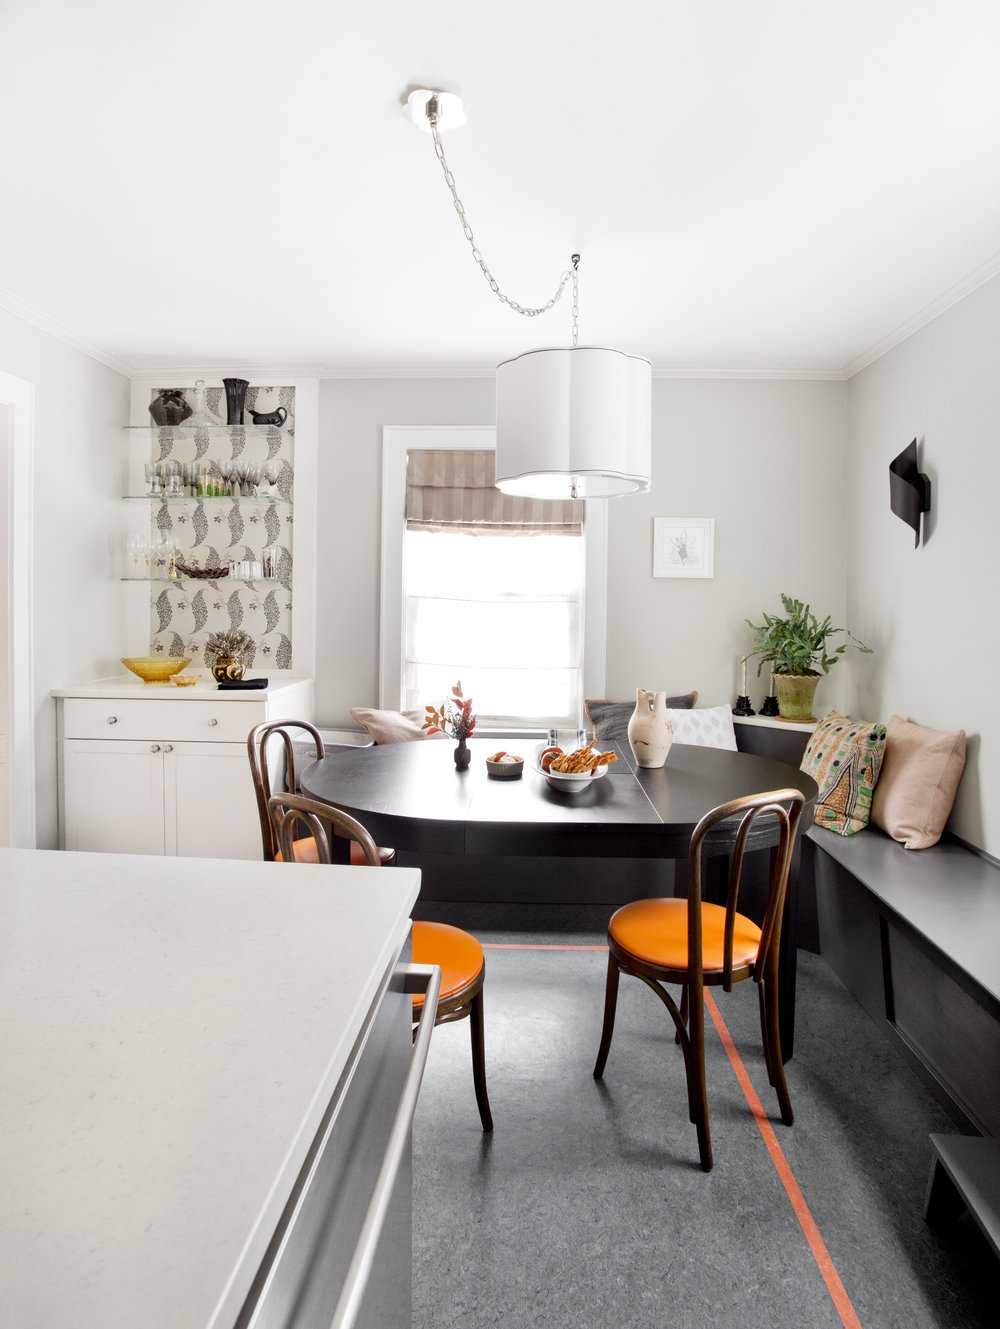 KELHI_TRANSITIONAL_KITCHEN_1.jpg